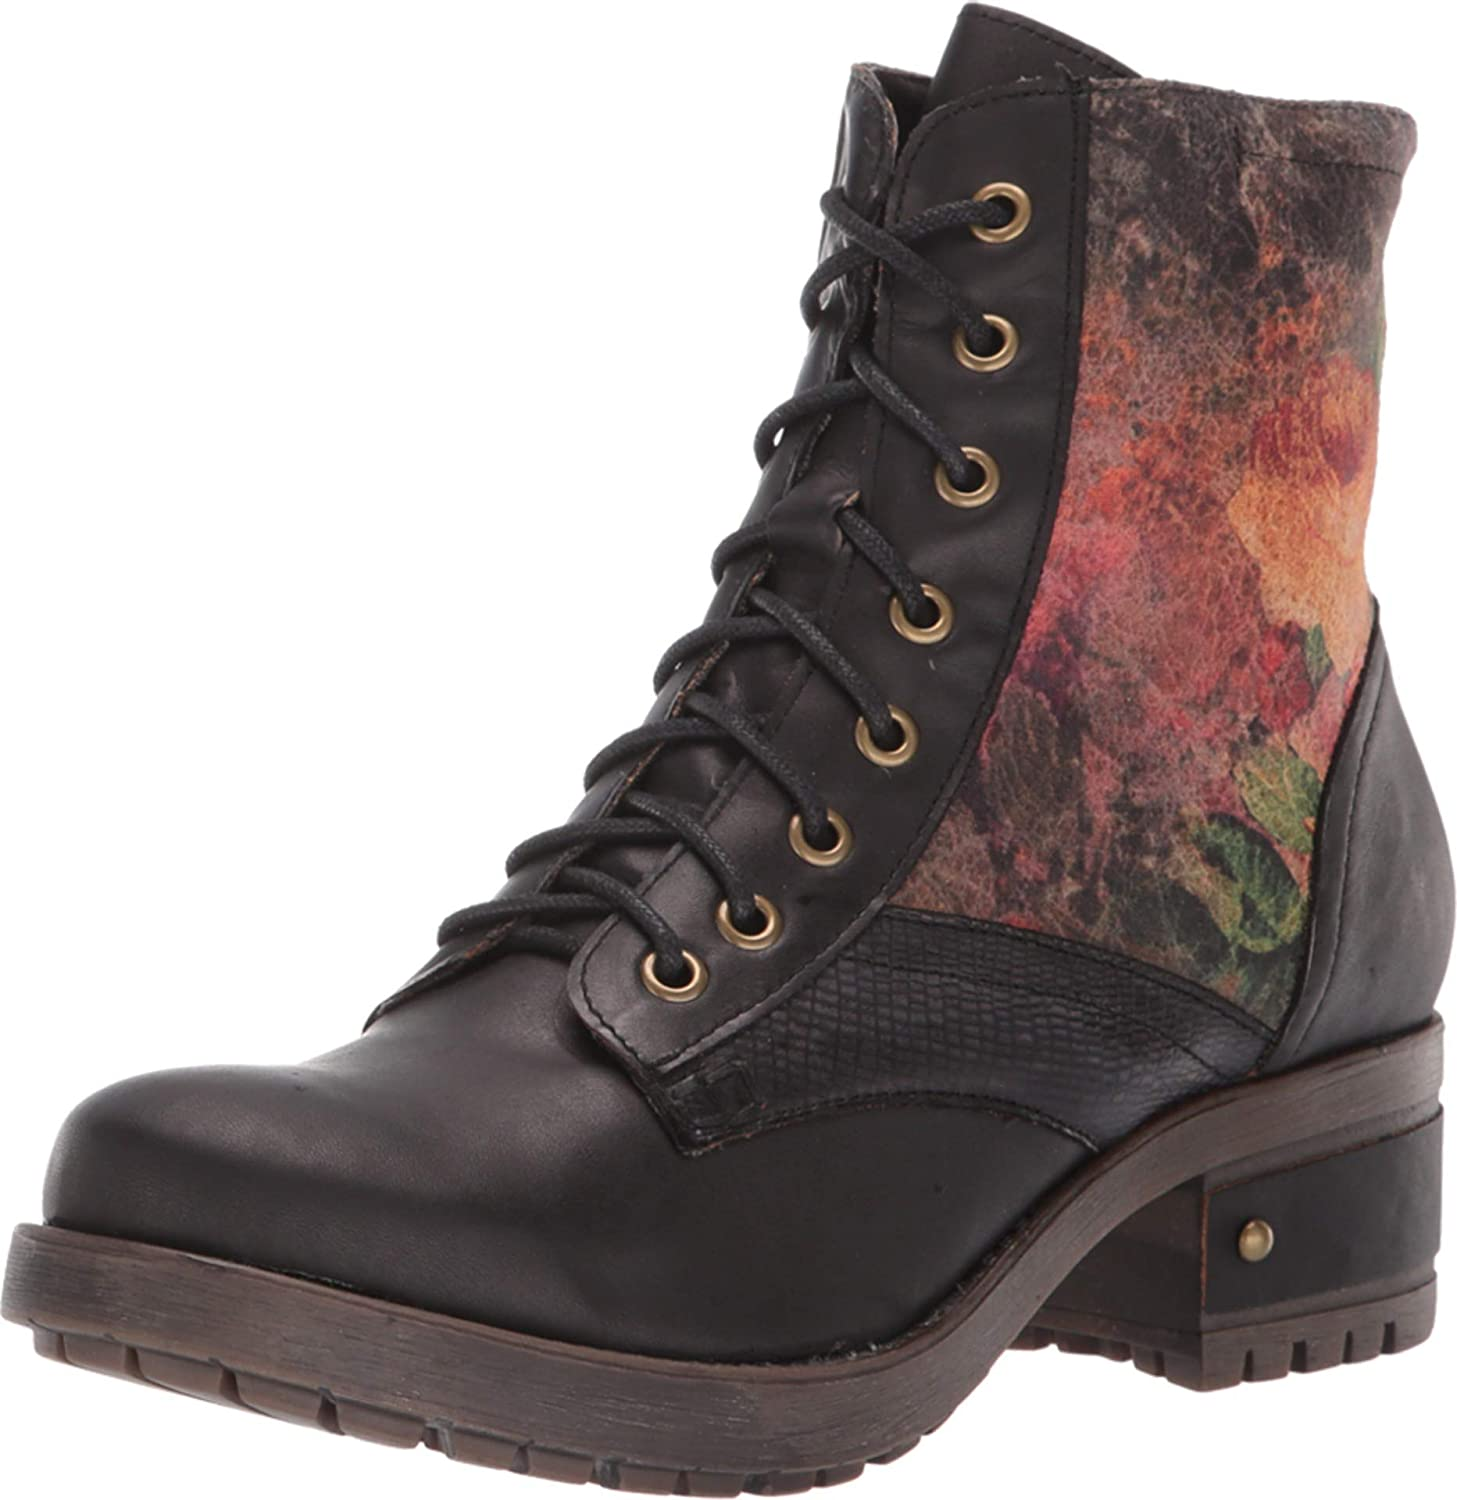 Limited time sale Spring Popularity Step L'Artiste Boots Women's Marty